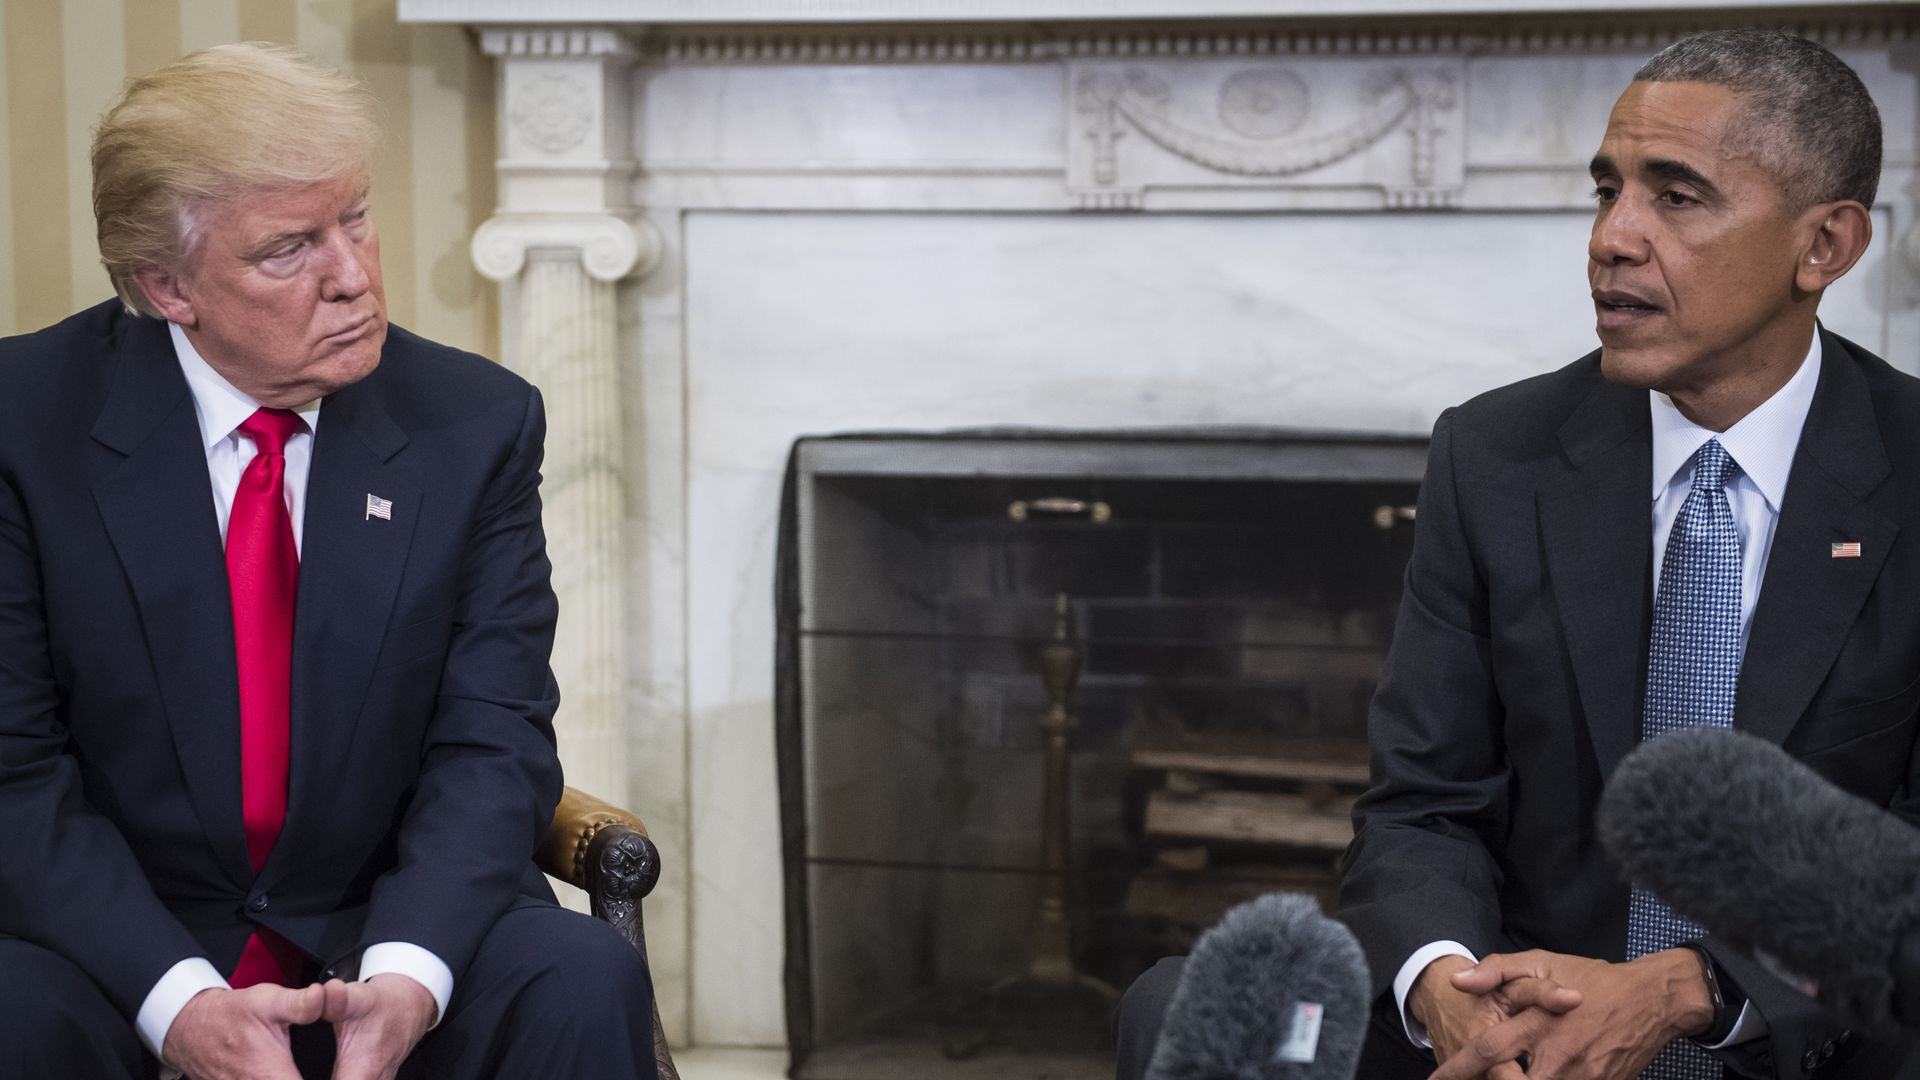 President Barack Obama and President Donald Trump in the Oval office